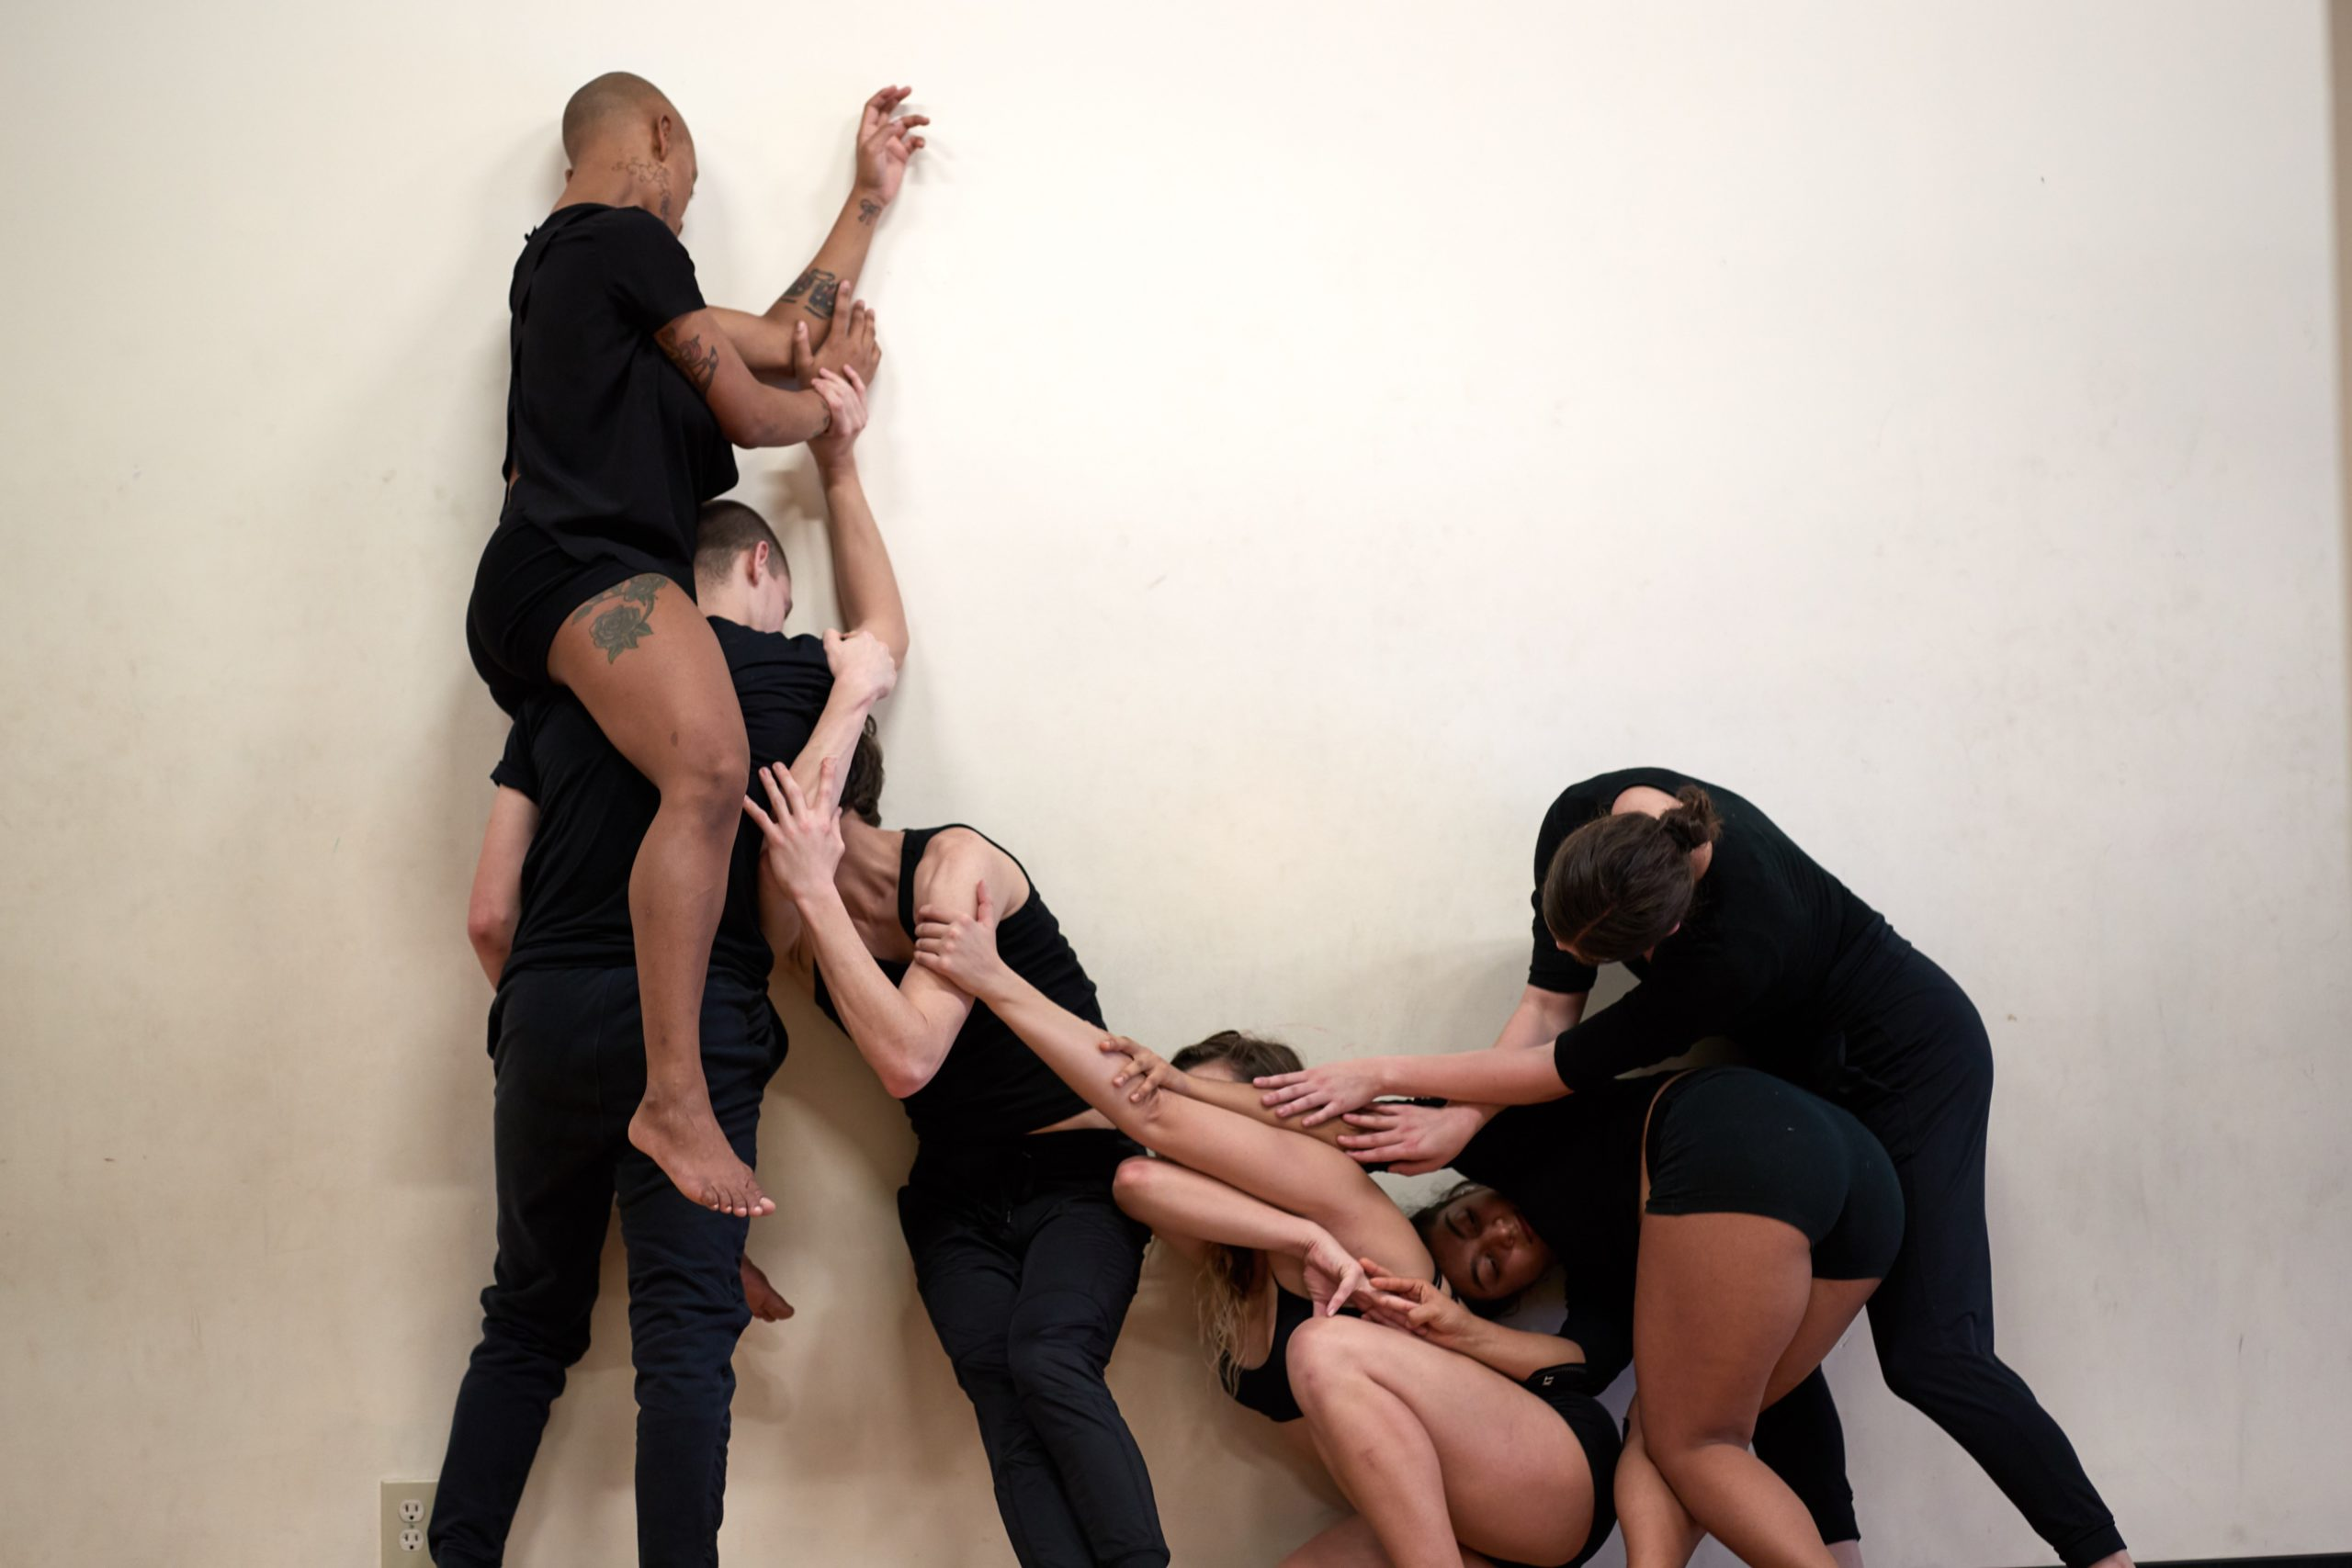 Core Dance Presents Manifolds at MFAH in April